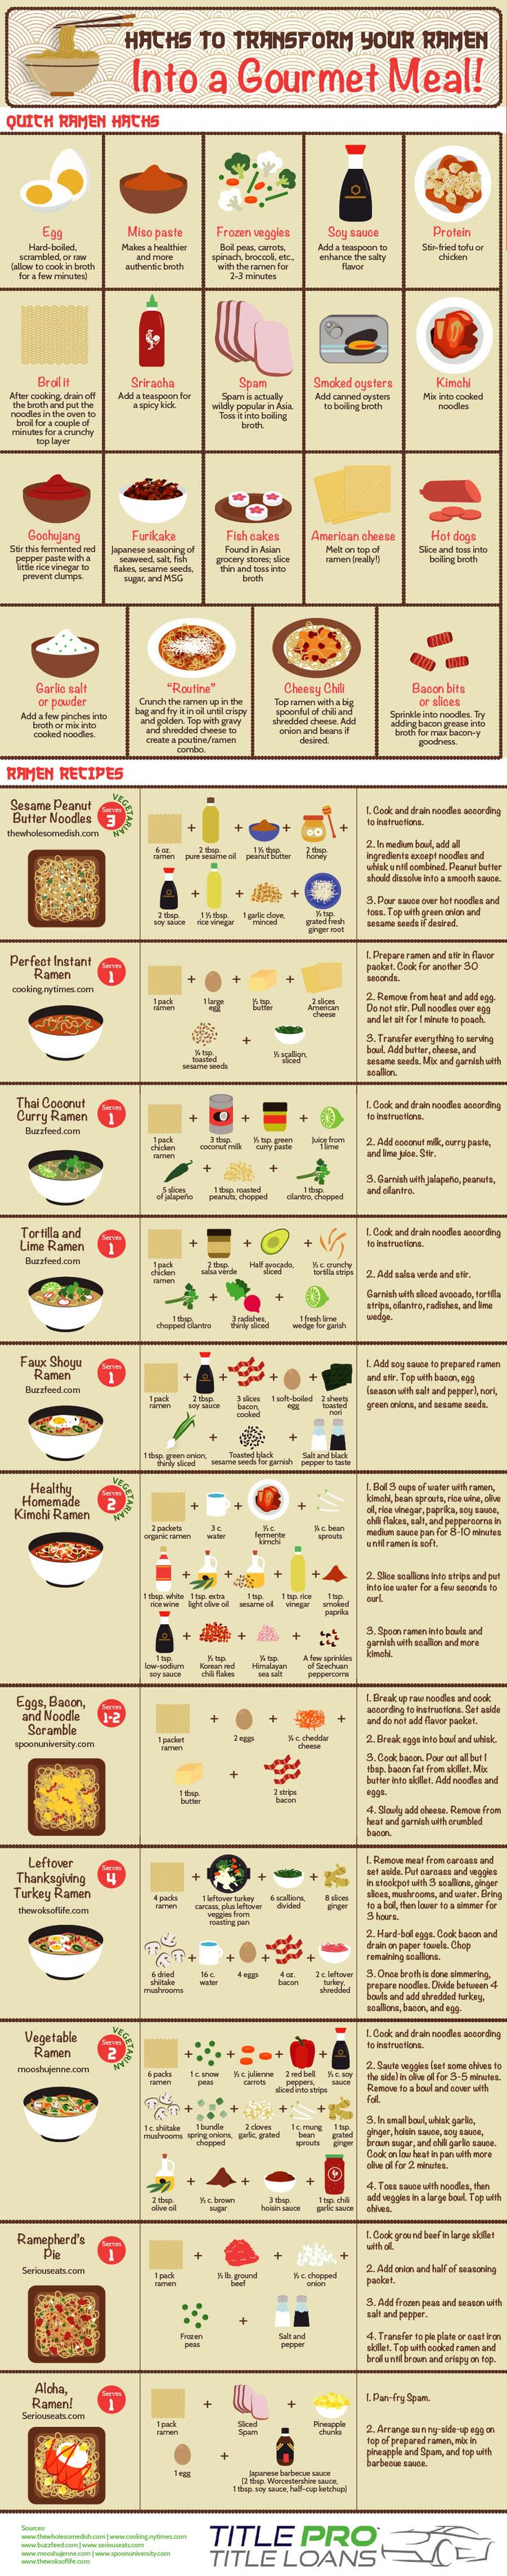 Hacks to Transform Your Ramen Into a Gourmet Meal